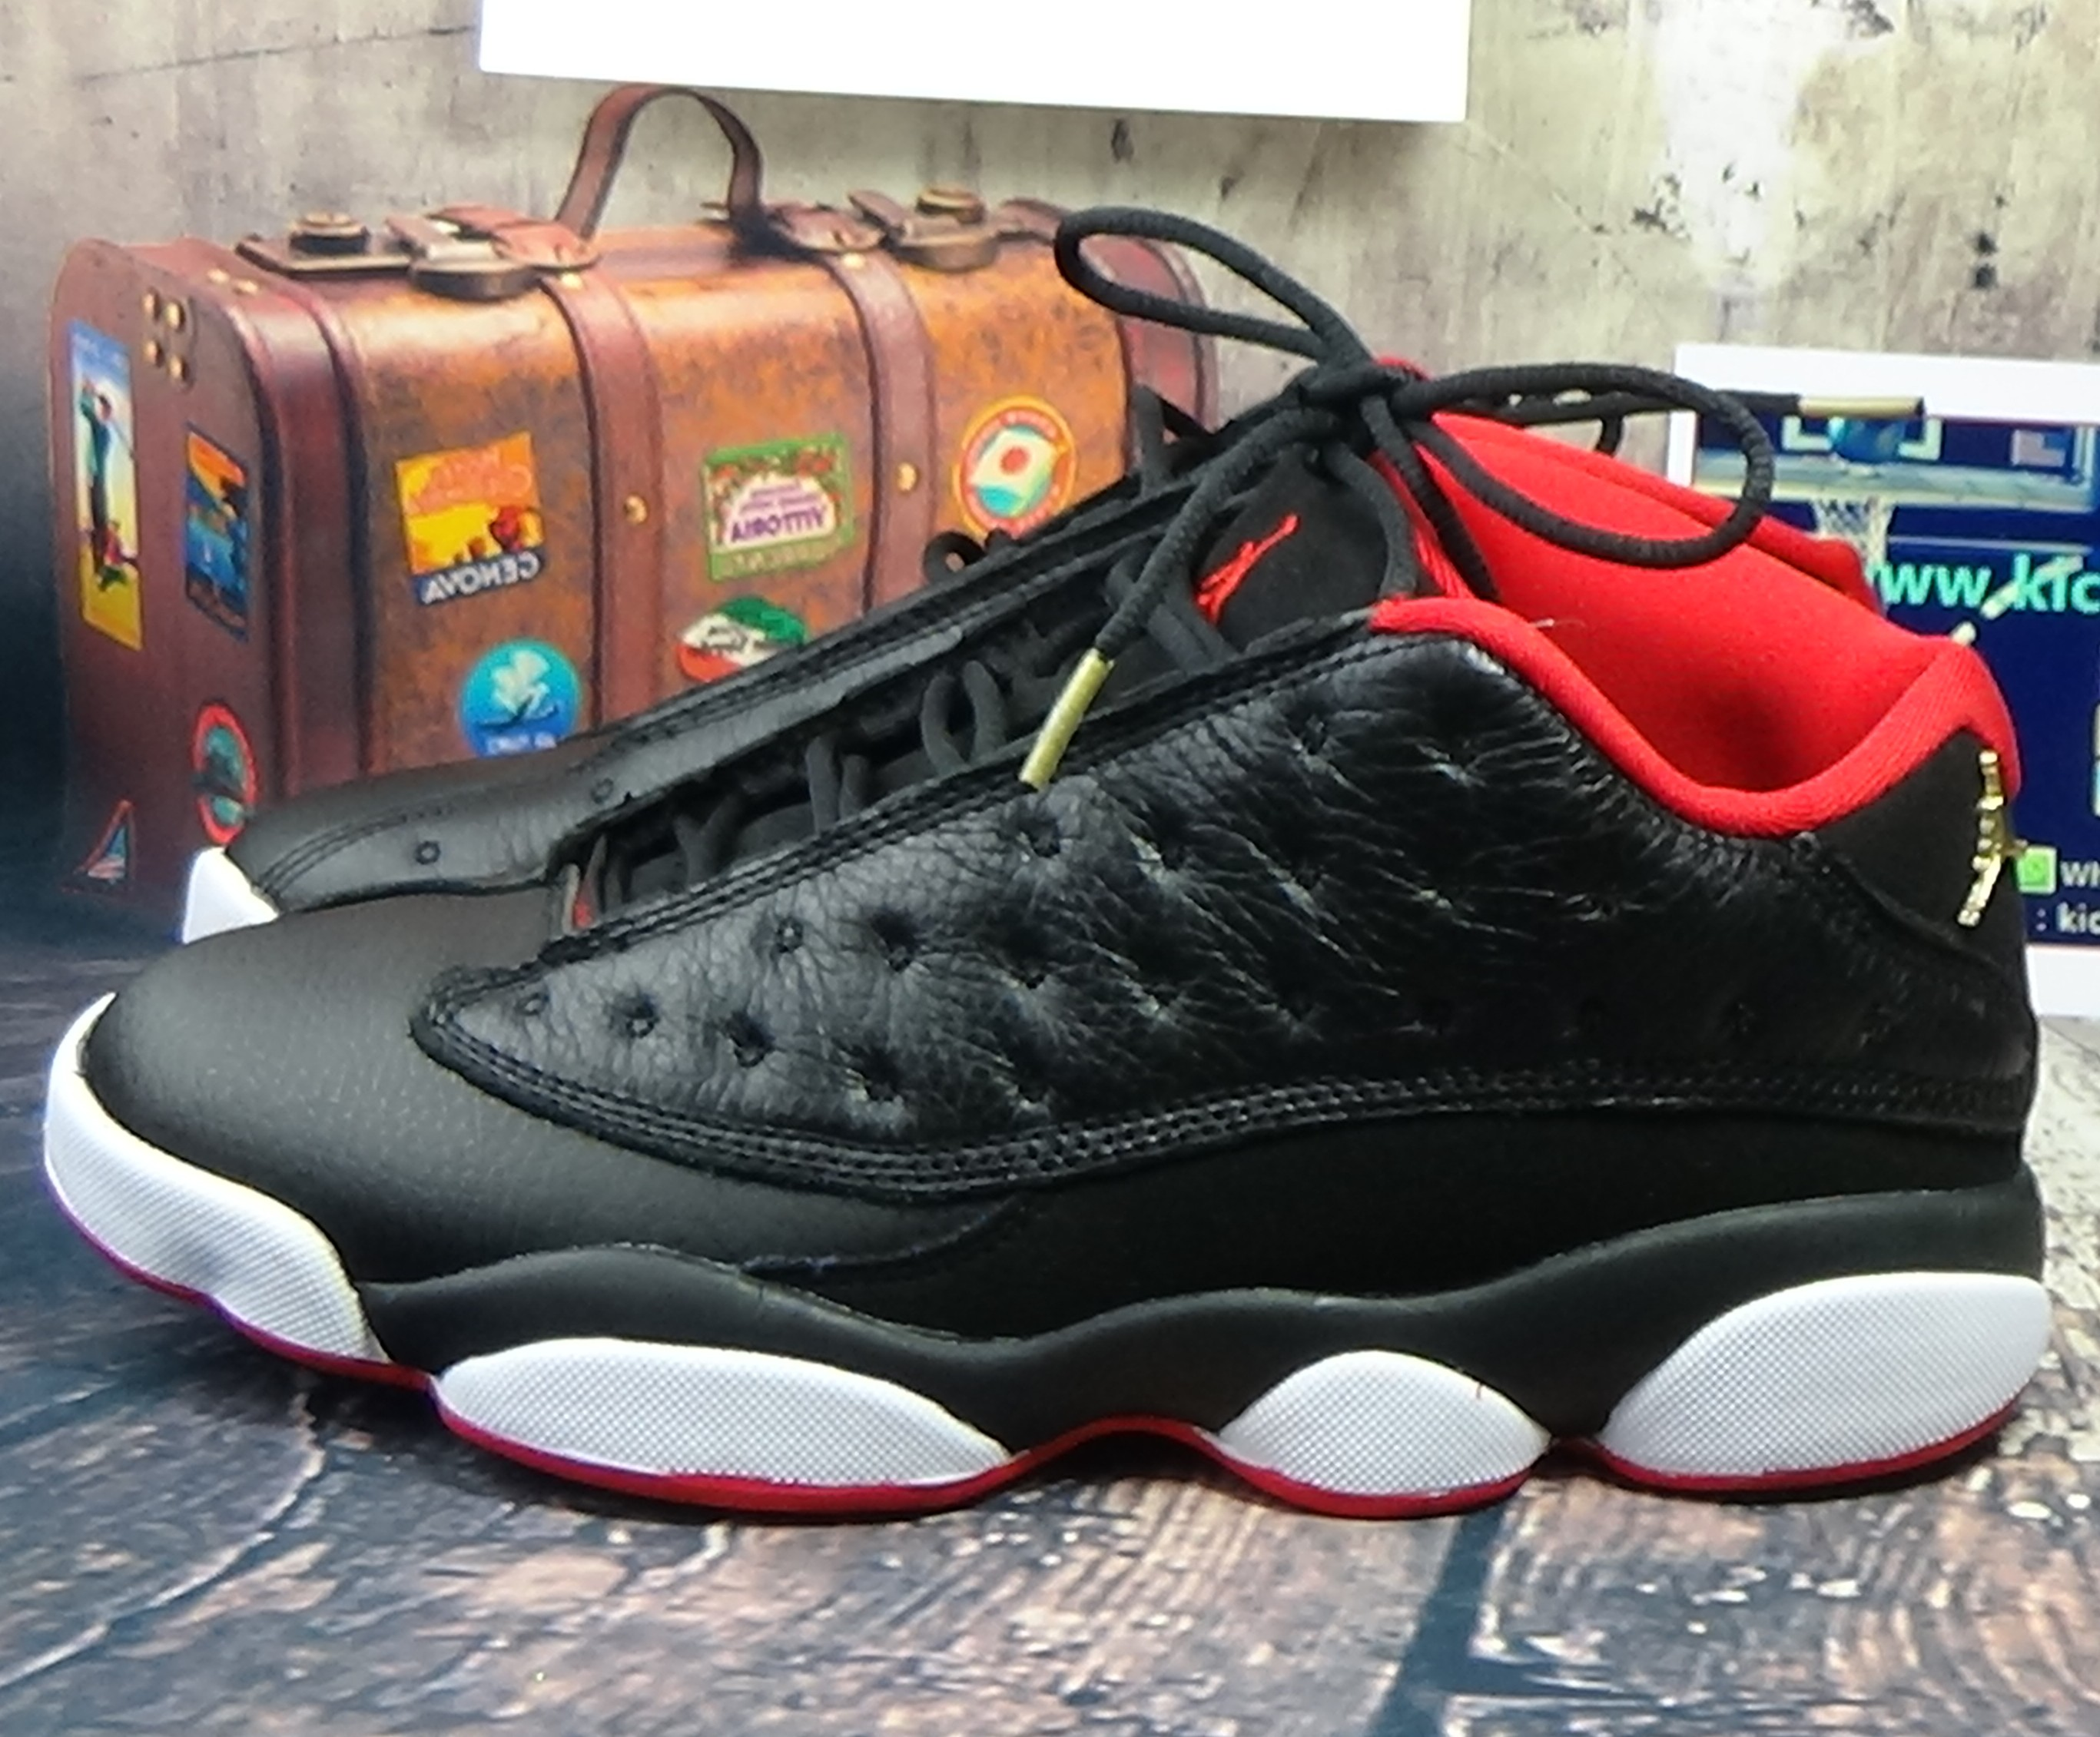 Authentic Air Jordan 13 Low Bred